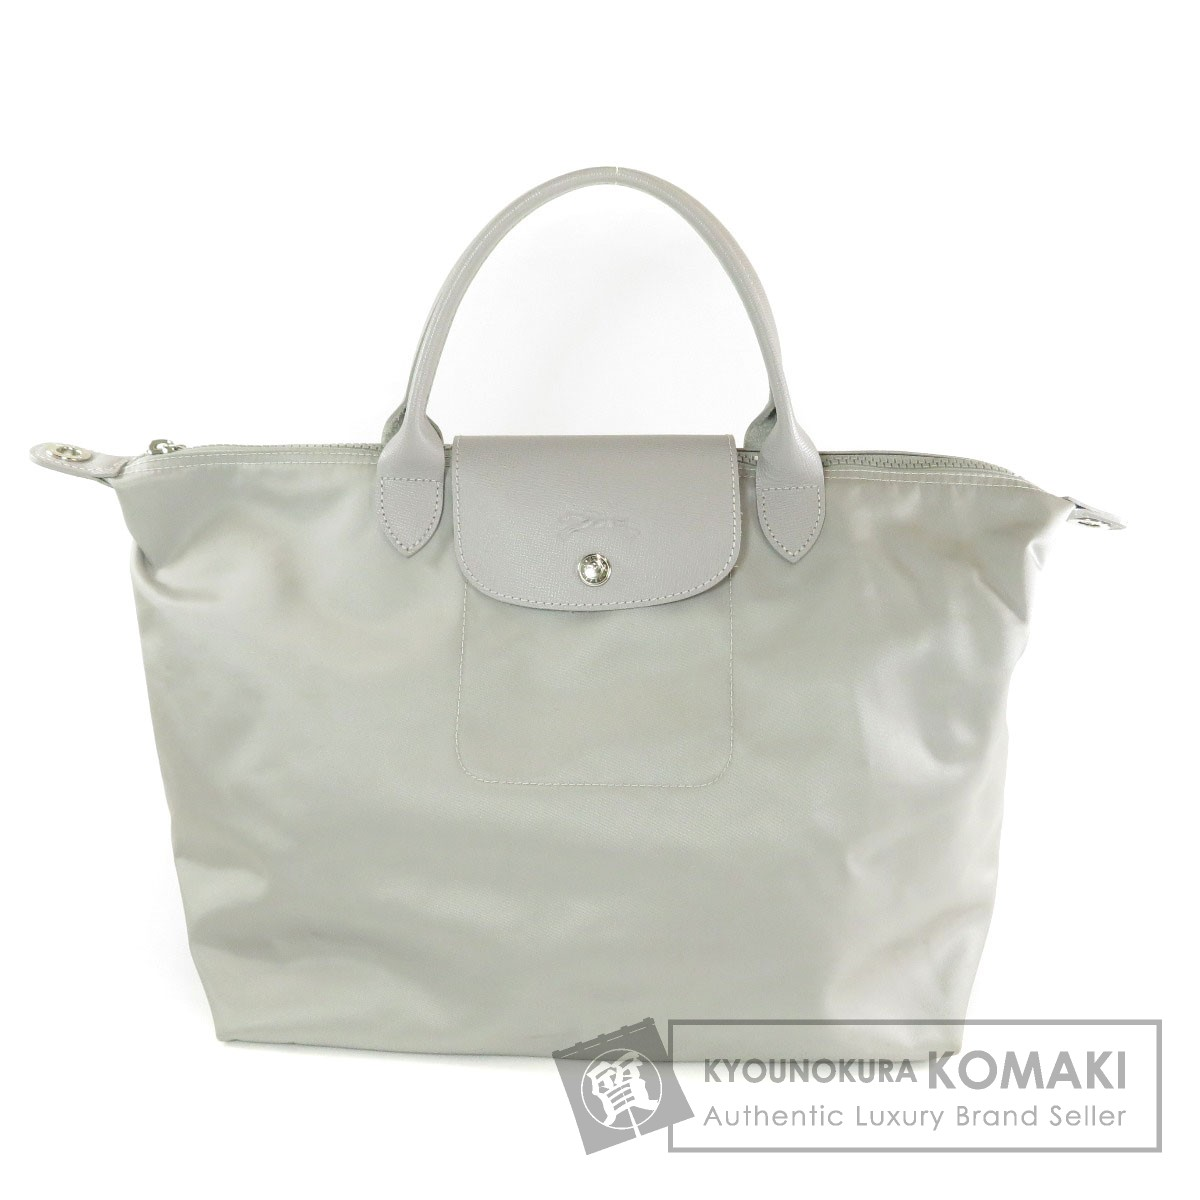 716d3218e3d9 ロンシャン ル·プリアージュ ネオ 2WAY トートバッグ ナイロン素材 レディース 【】【Longchamp】 Longchamp ロンシャン  ル·プリアージュ ネオ 2WAY トートバッグ